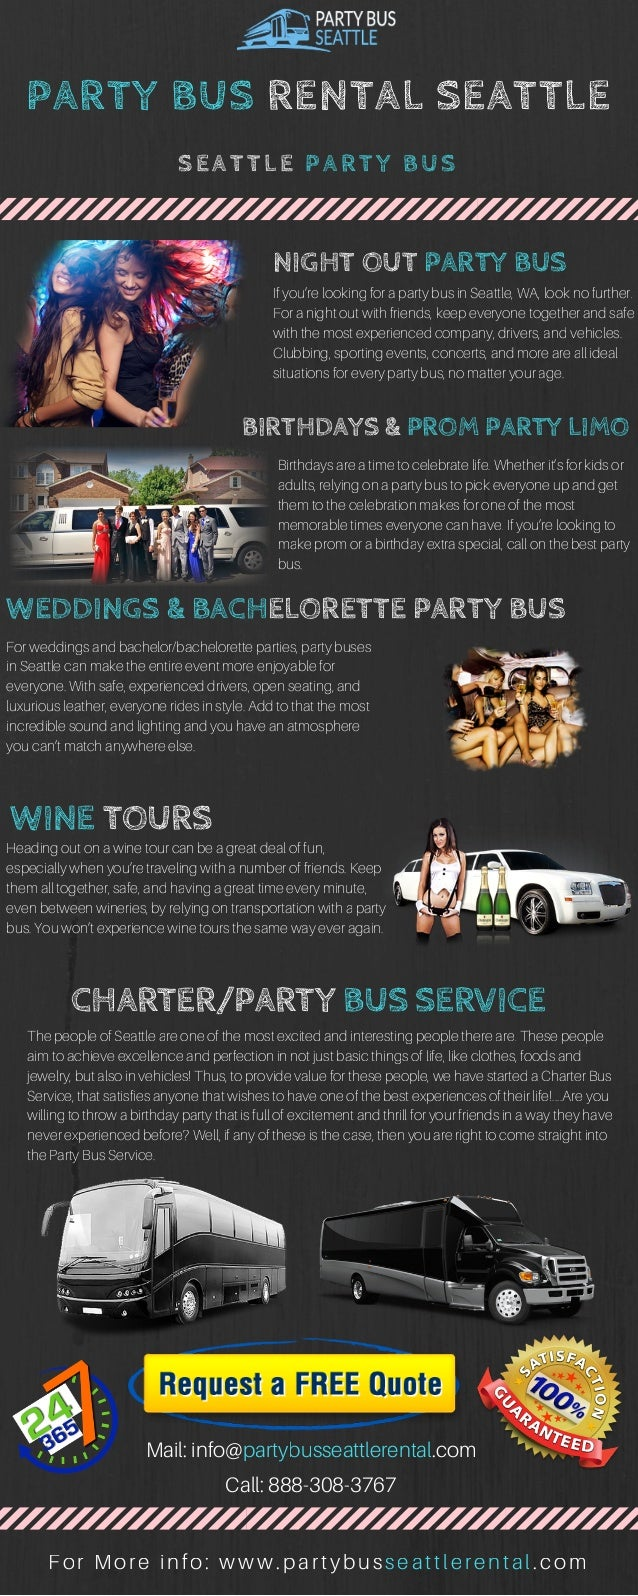 PARTY BUS RENTAL SEATTLE NIGHT OUT If Youre Looking